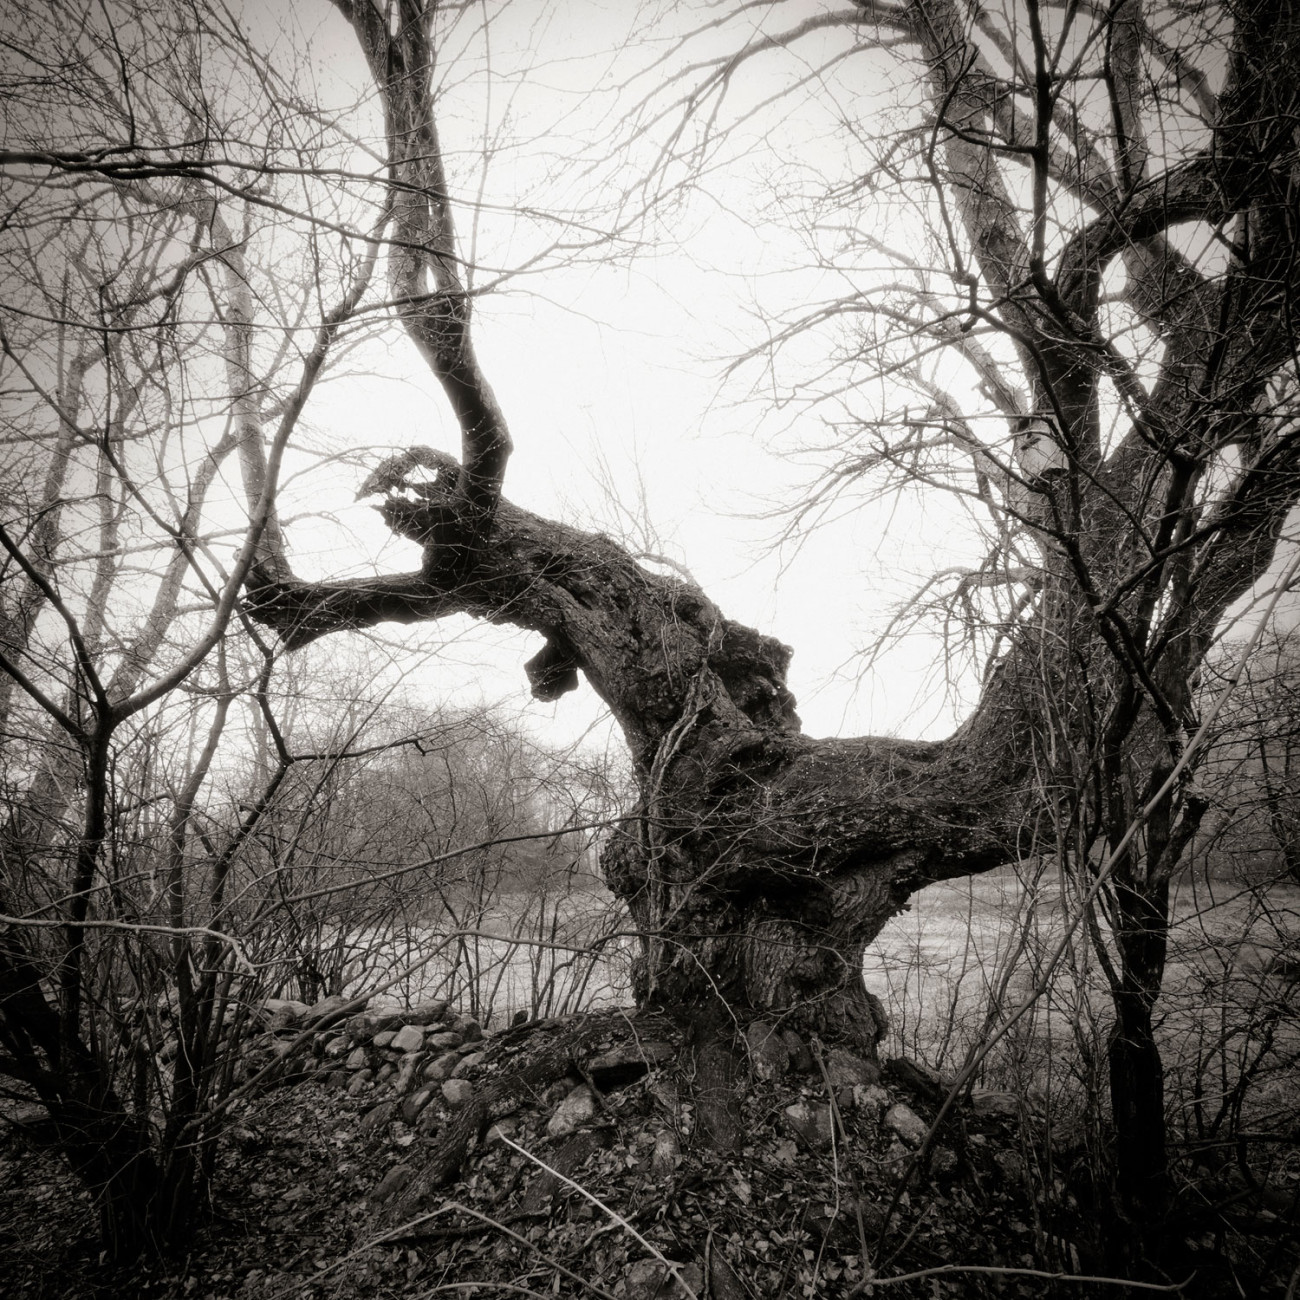 Winter tree, Lithchfield Hills, Connecticut, 2011